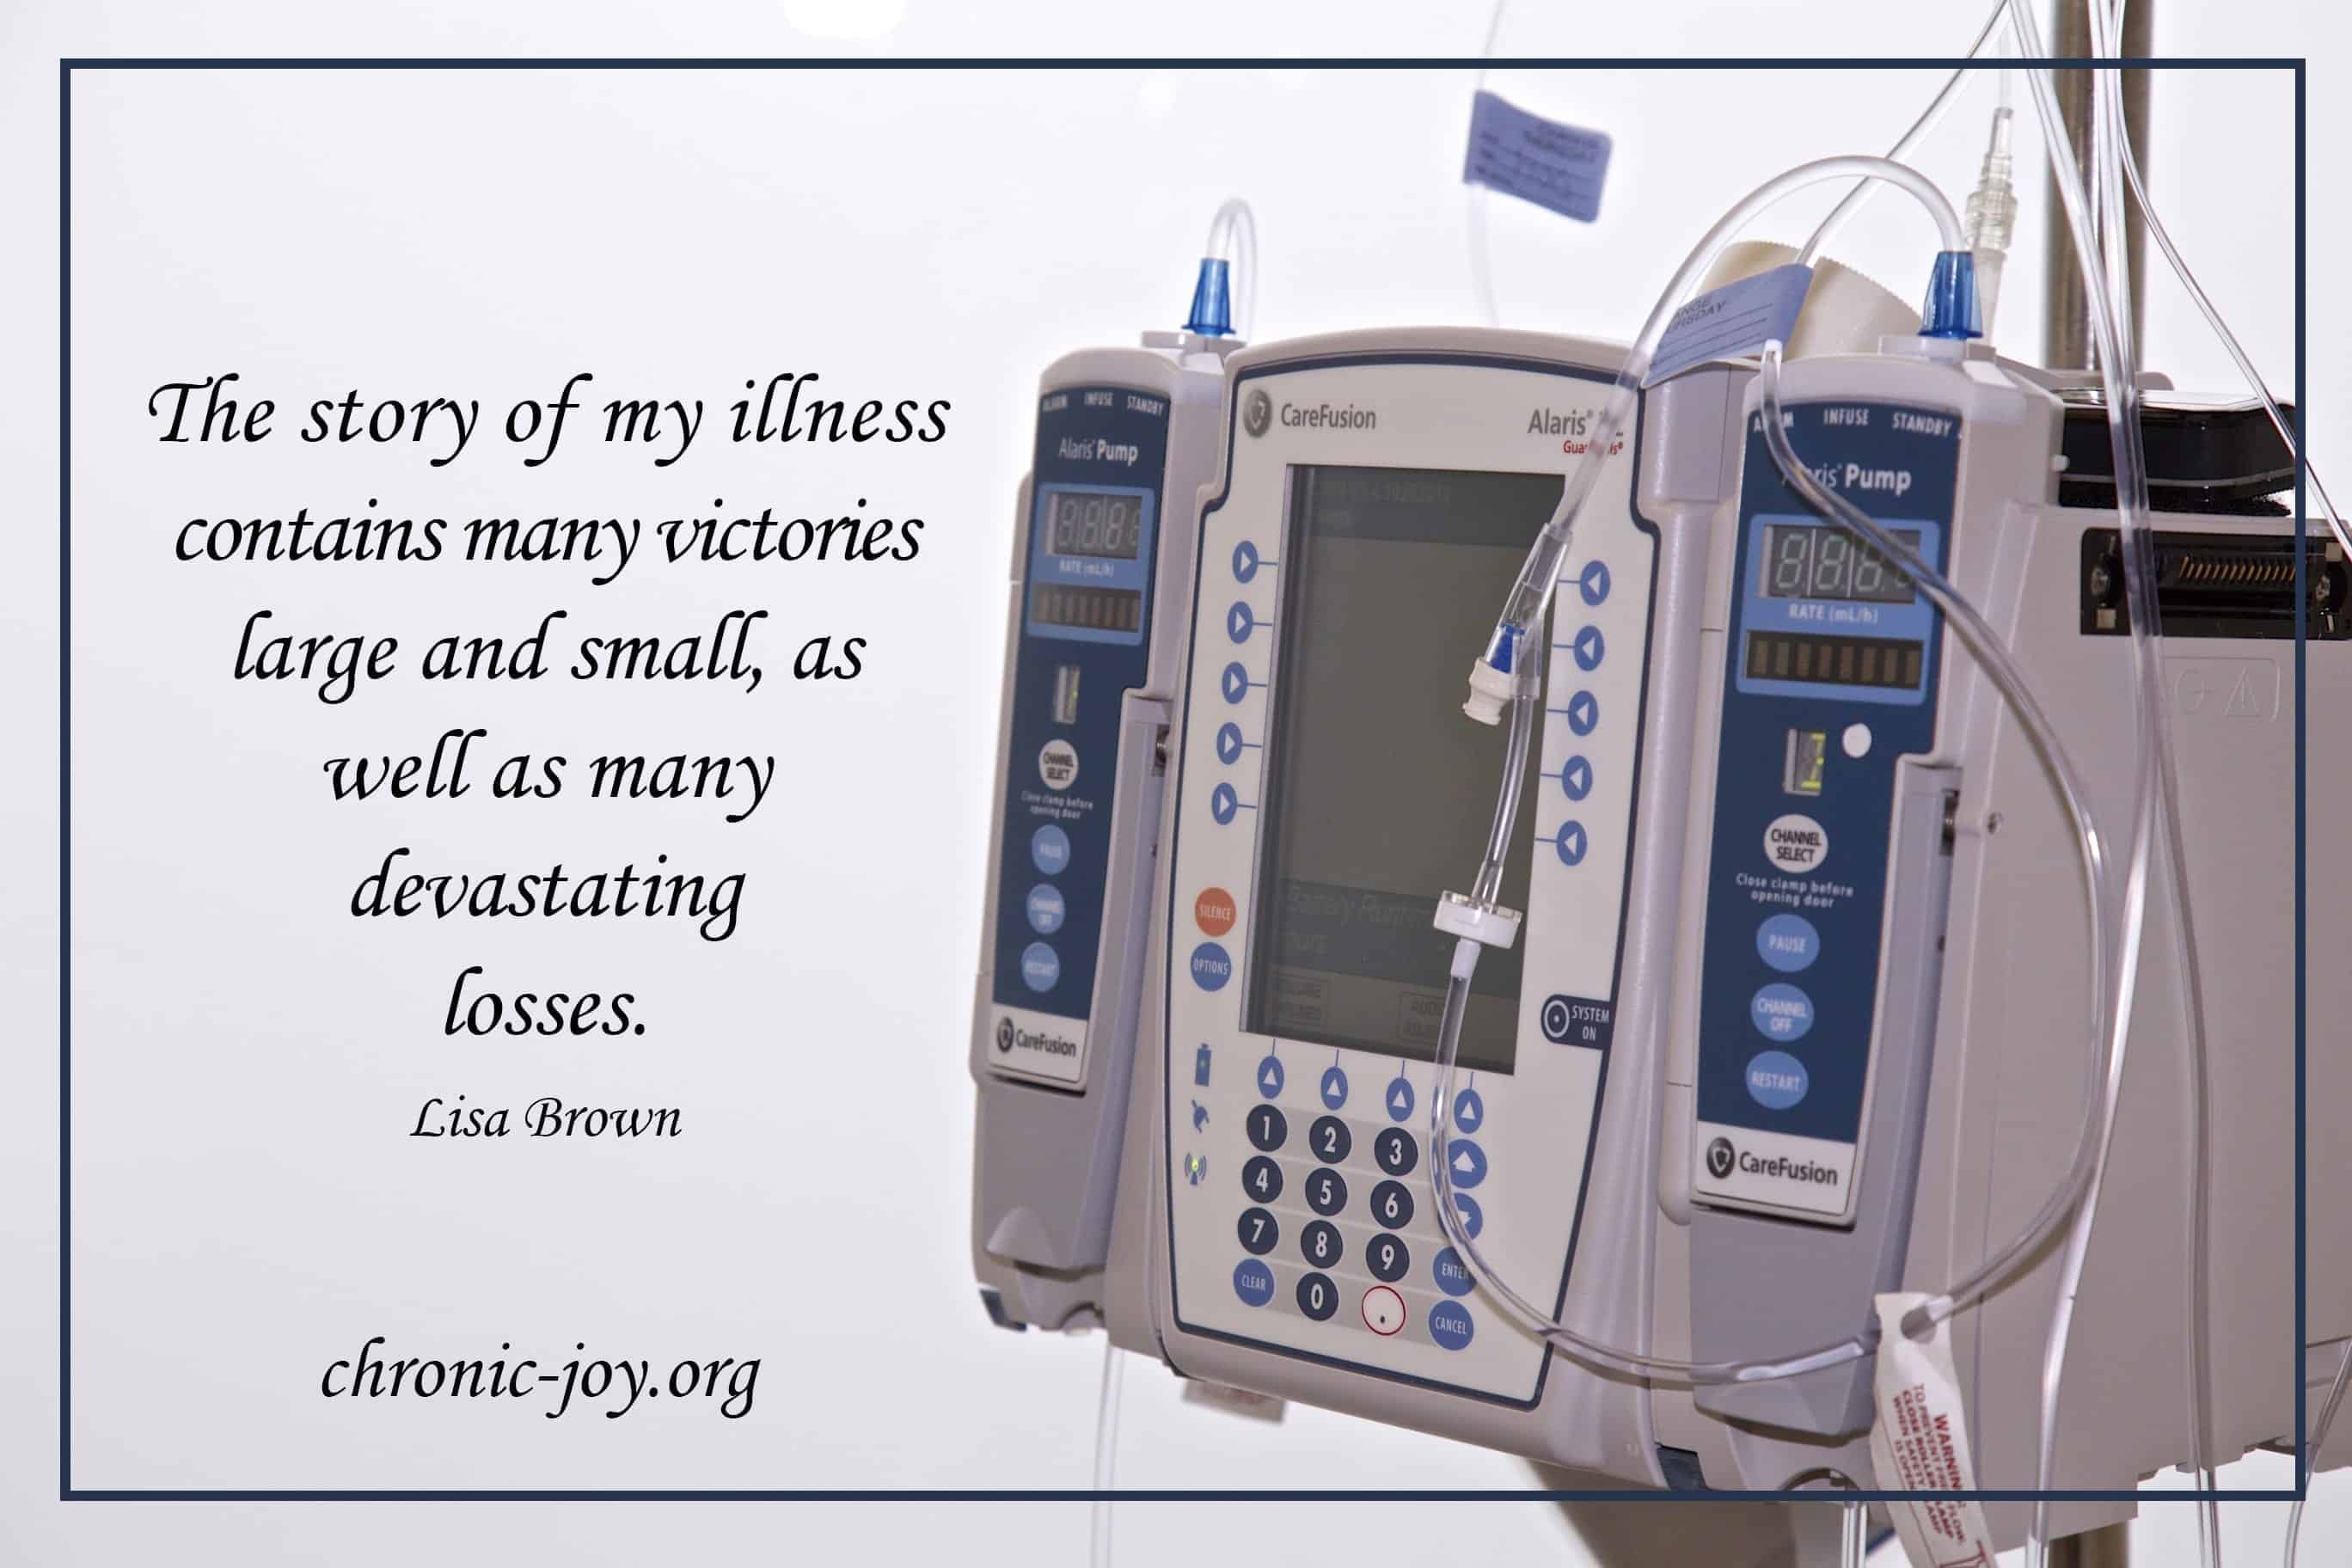 The story of my illness contains many victories large and small, as well as many devastating losses. Lisa Brown